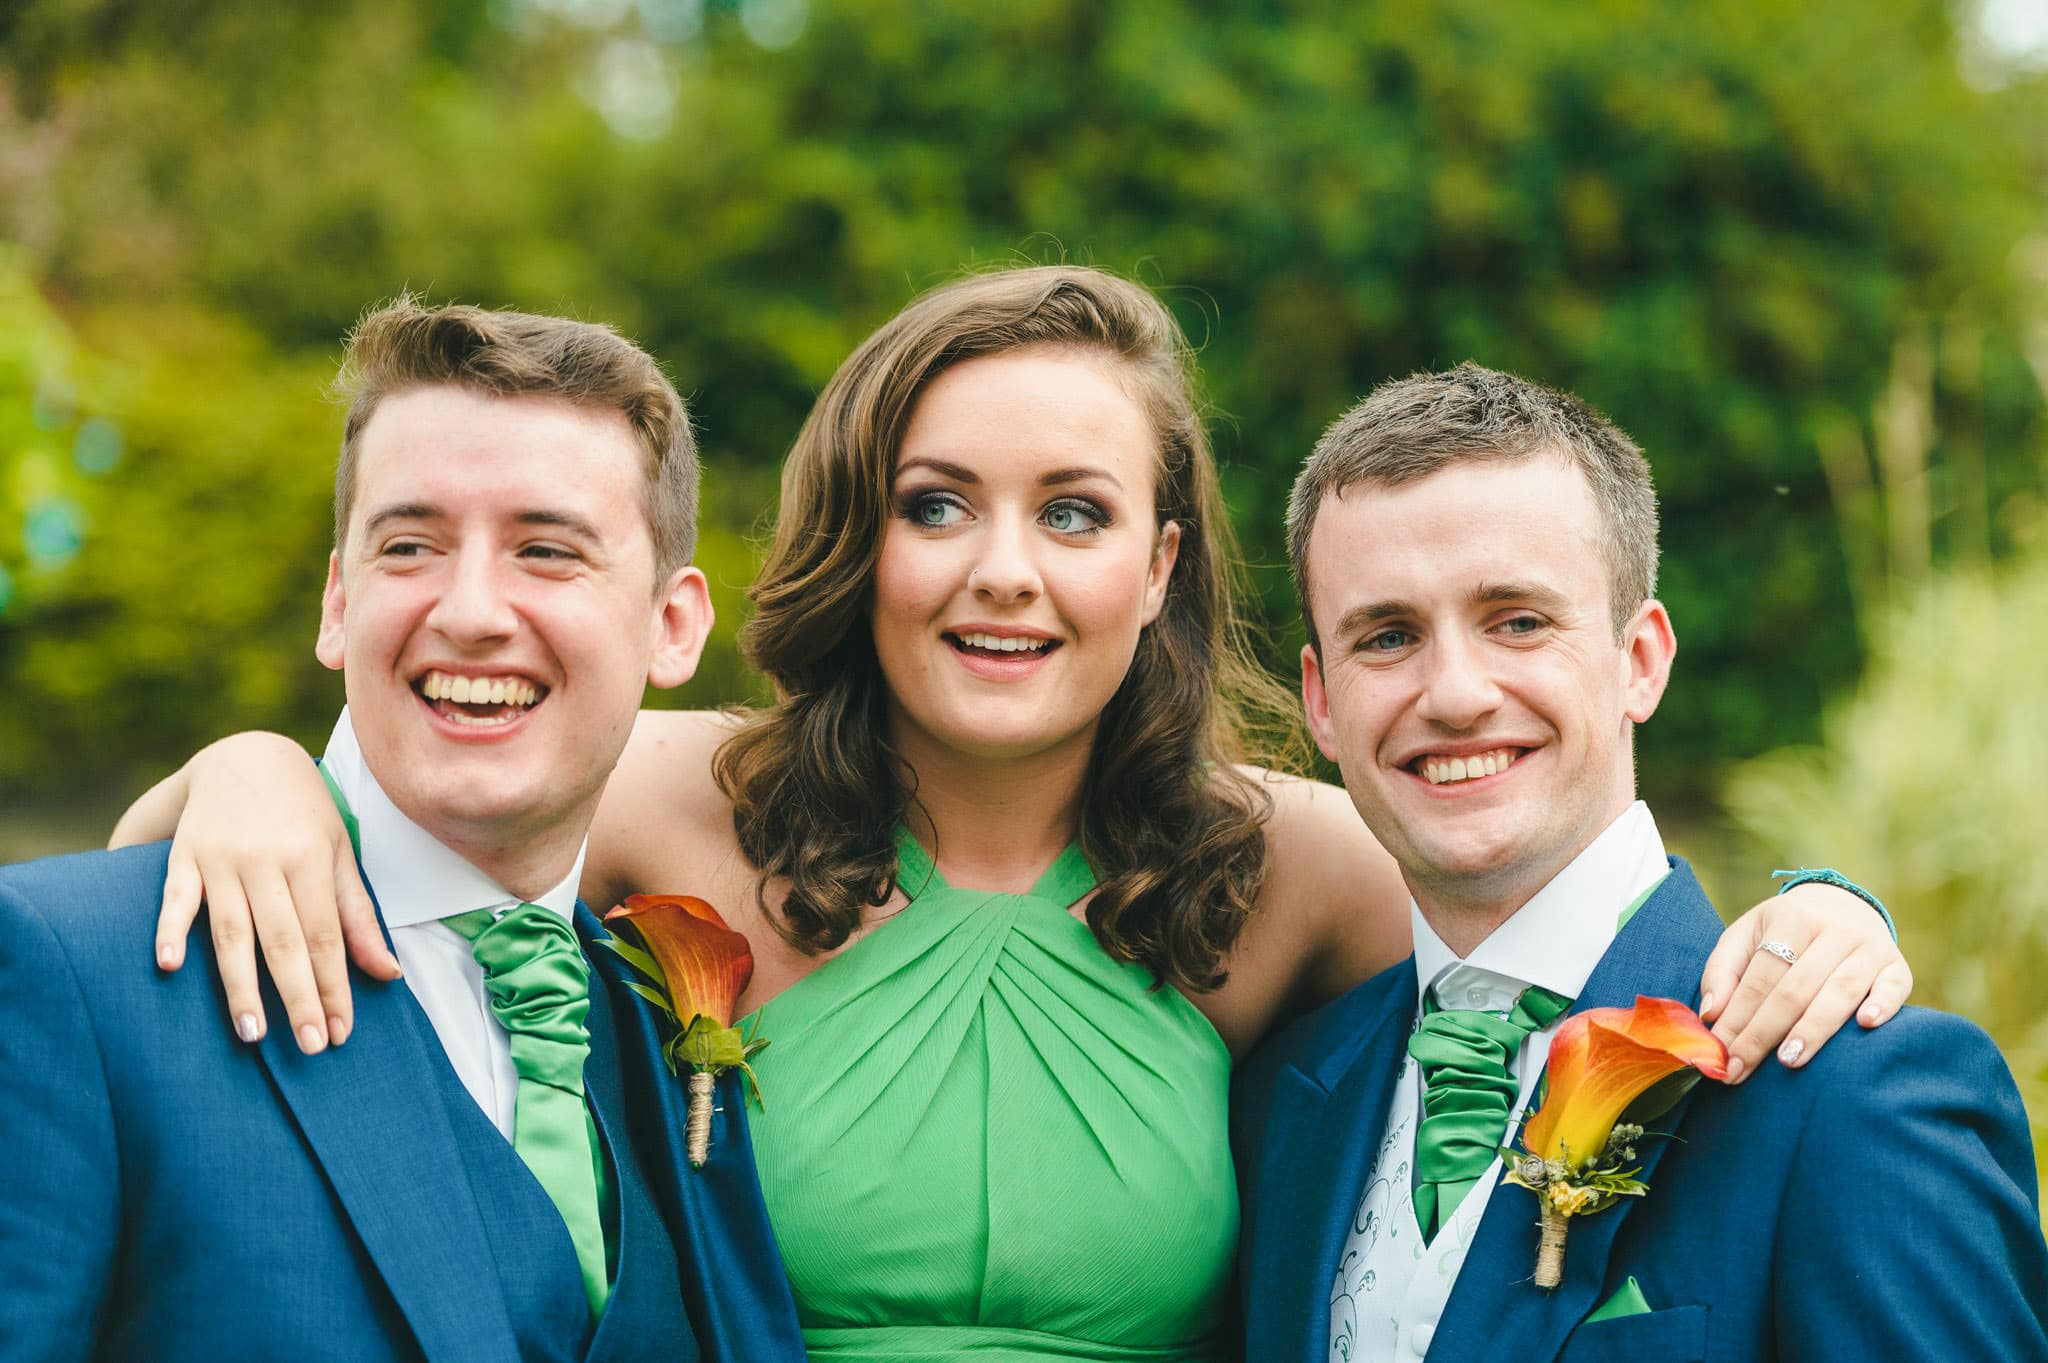 Wedding photography at Y Talbot Hotel in Tregaron, Wales | Tina + Phil 59